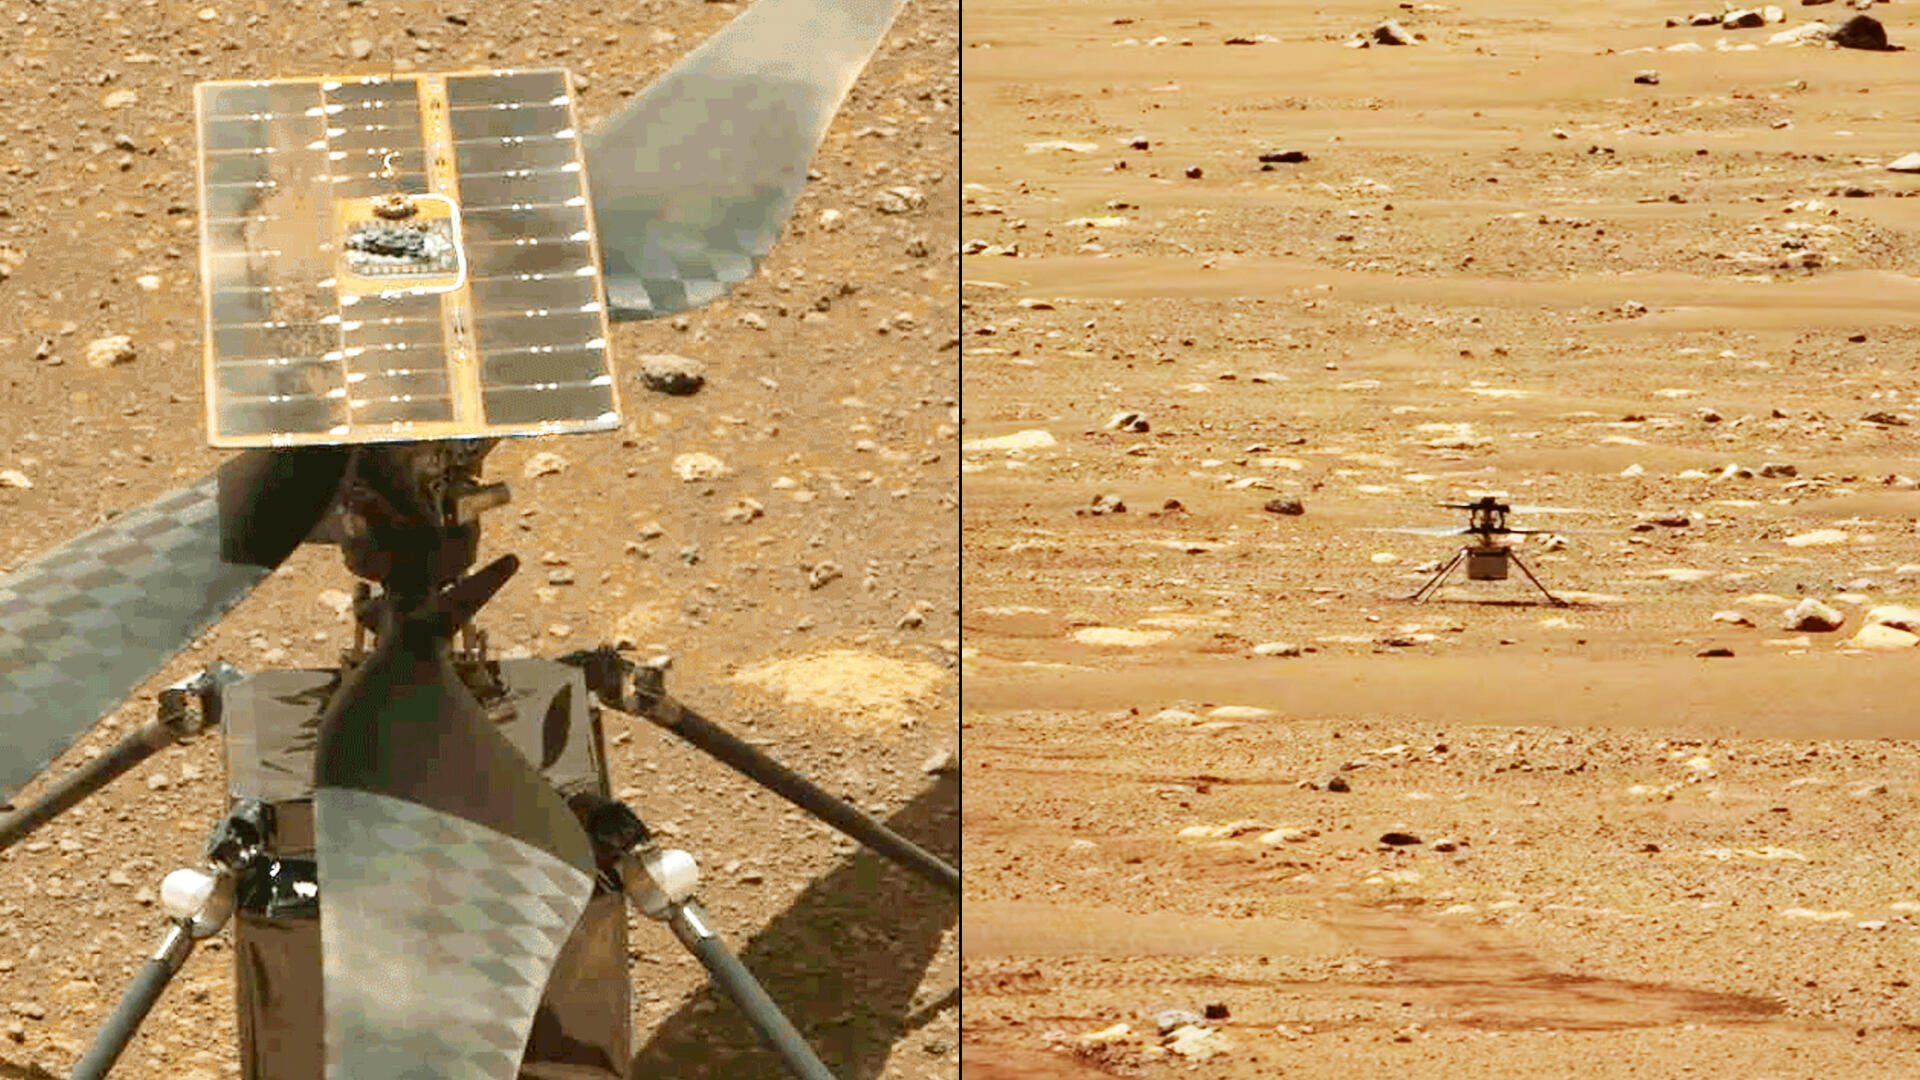 Video: Watch NASA's Ingenuity helicopter fly on Mars